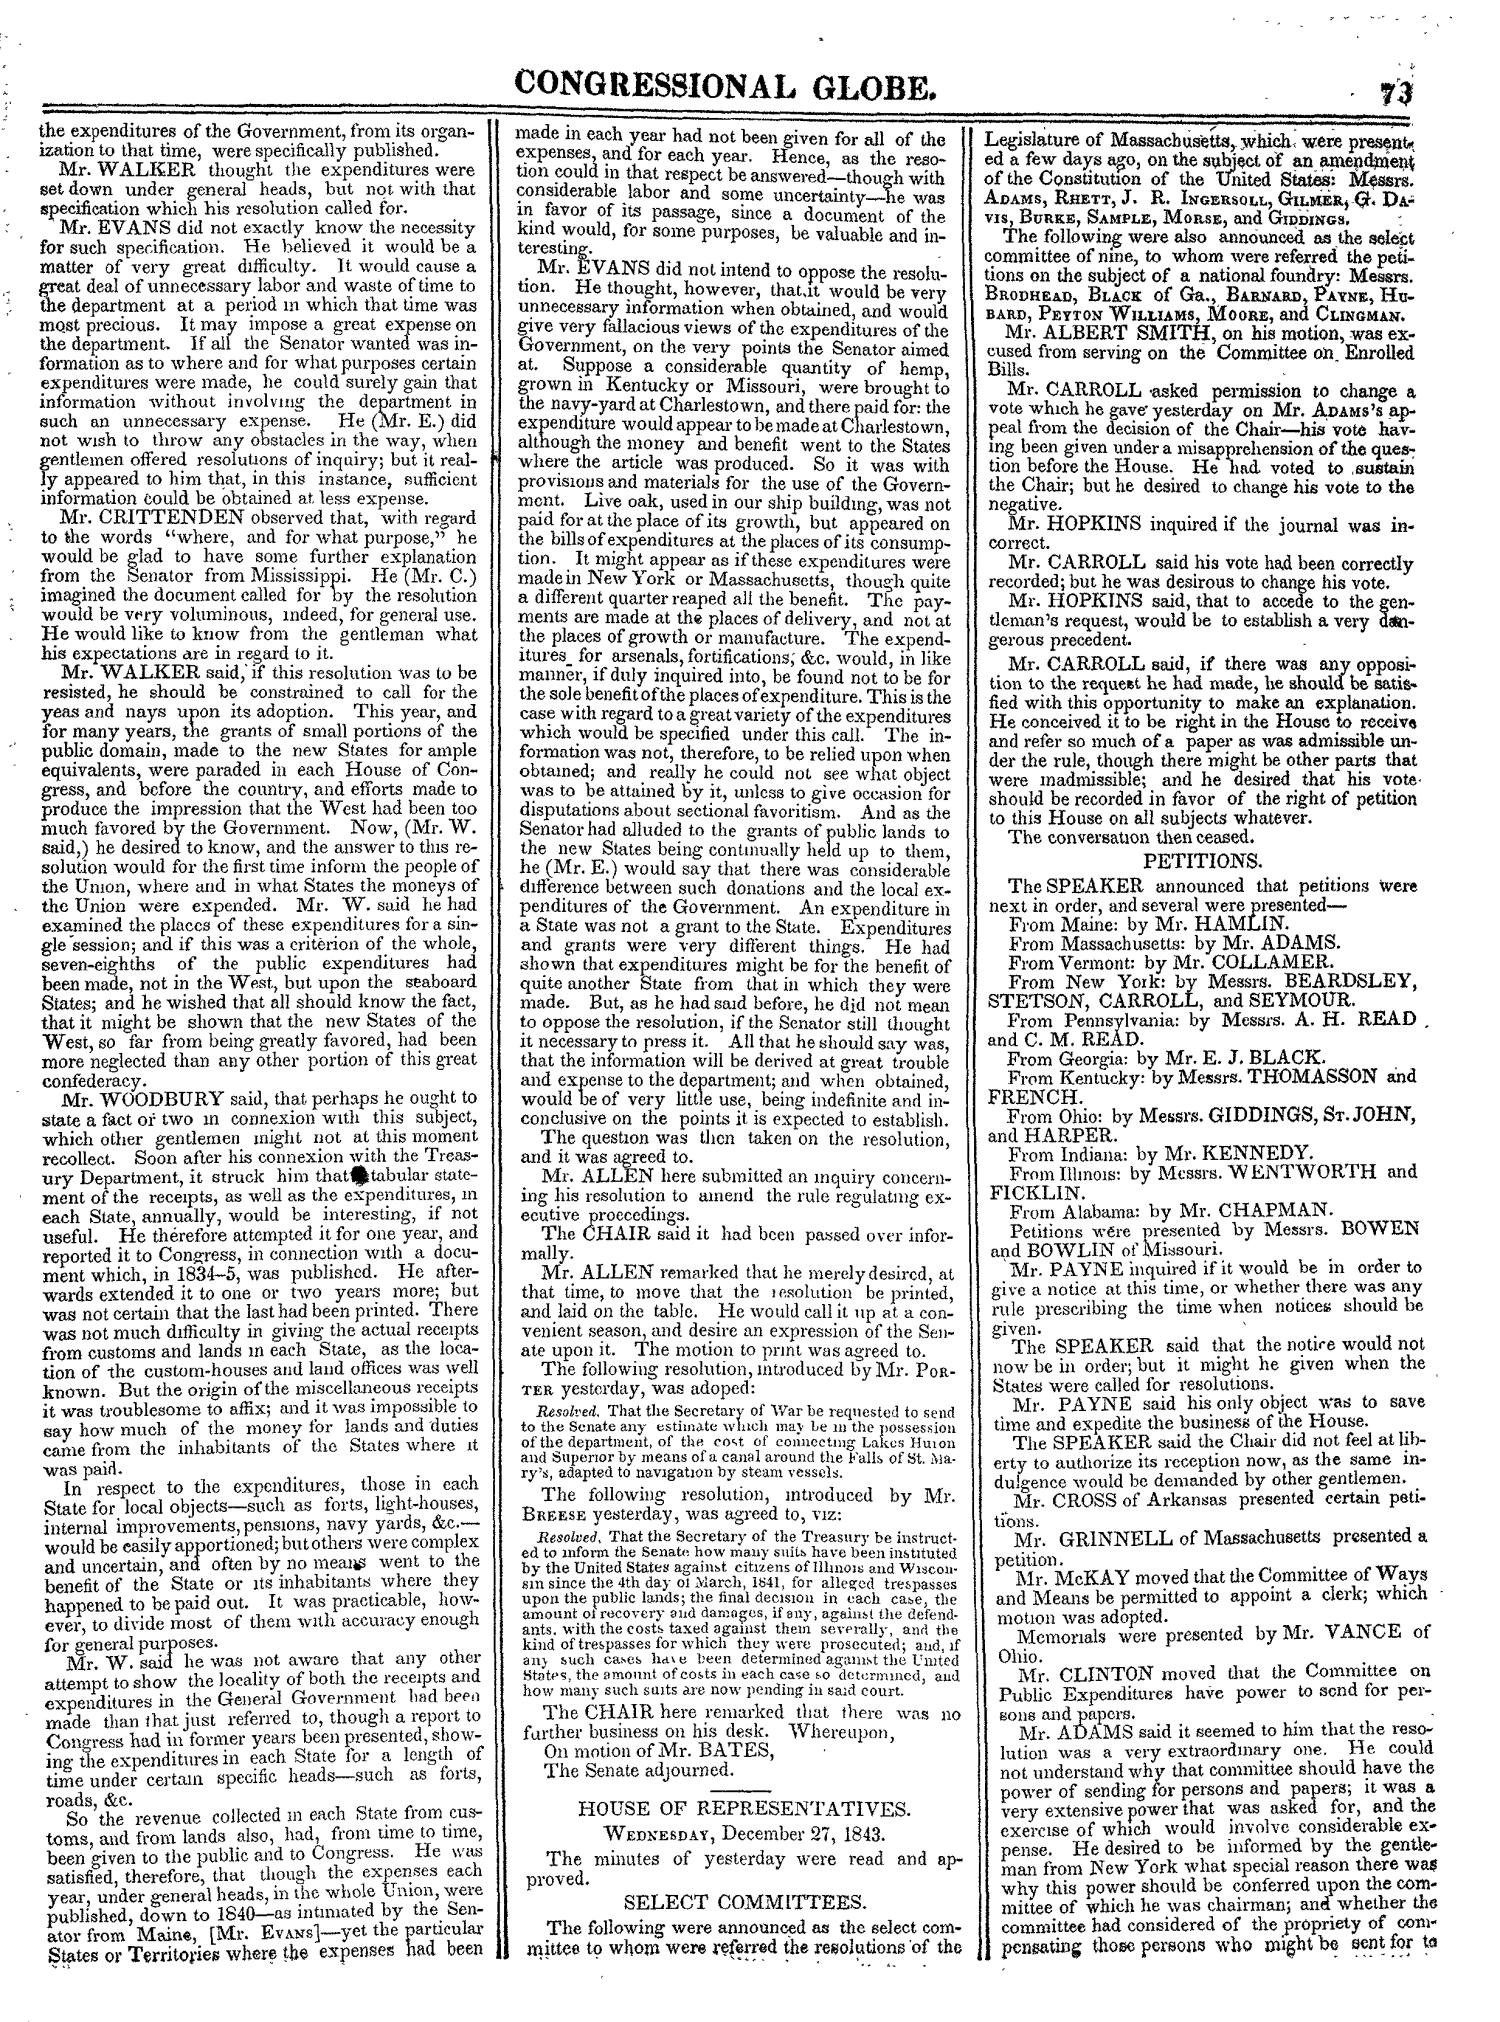 The Congressional Globe, Volume 13, Part 1: Twenty-Eighth Congress, First Session                                                                                                      73